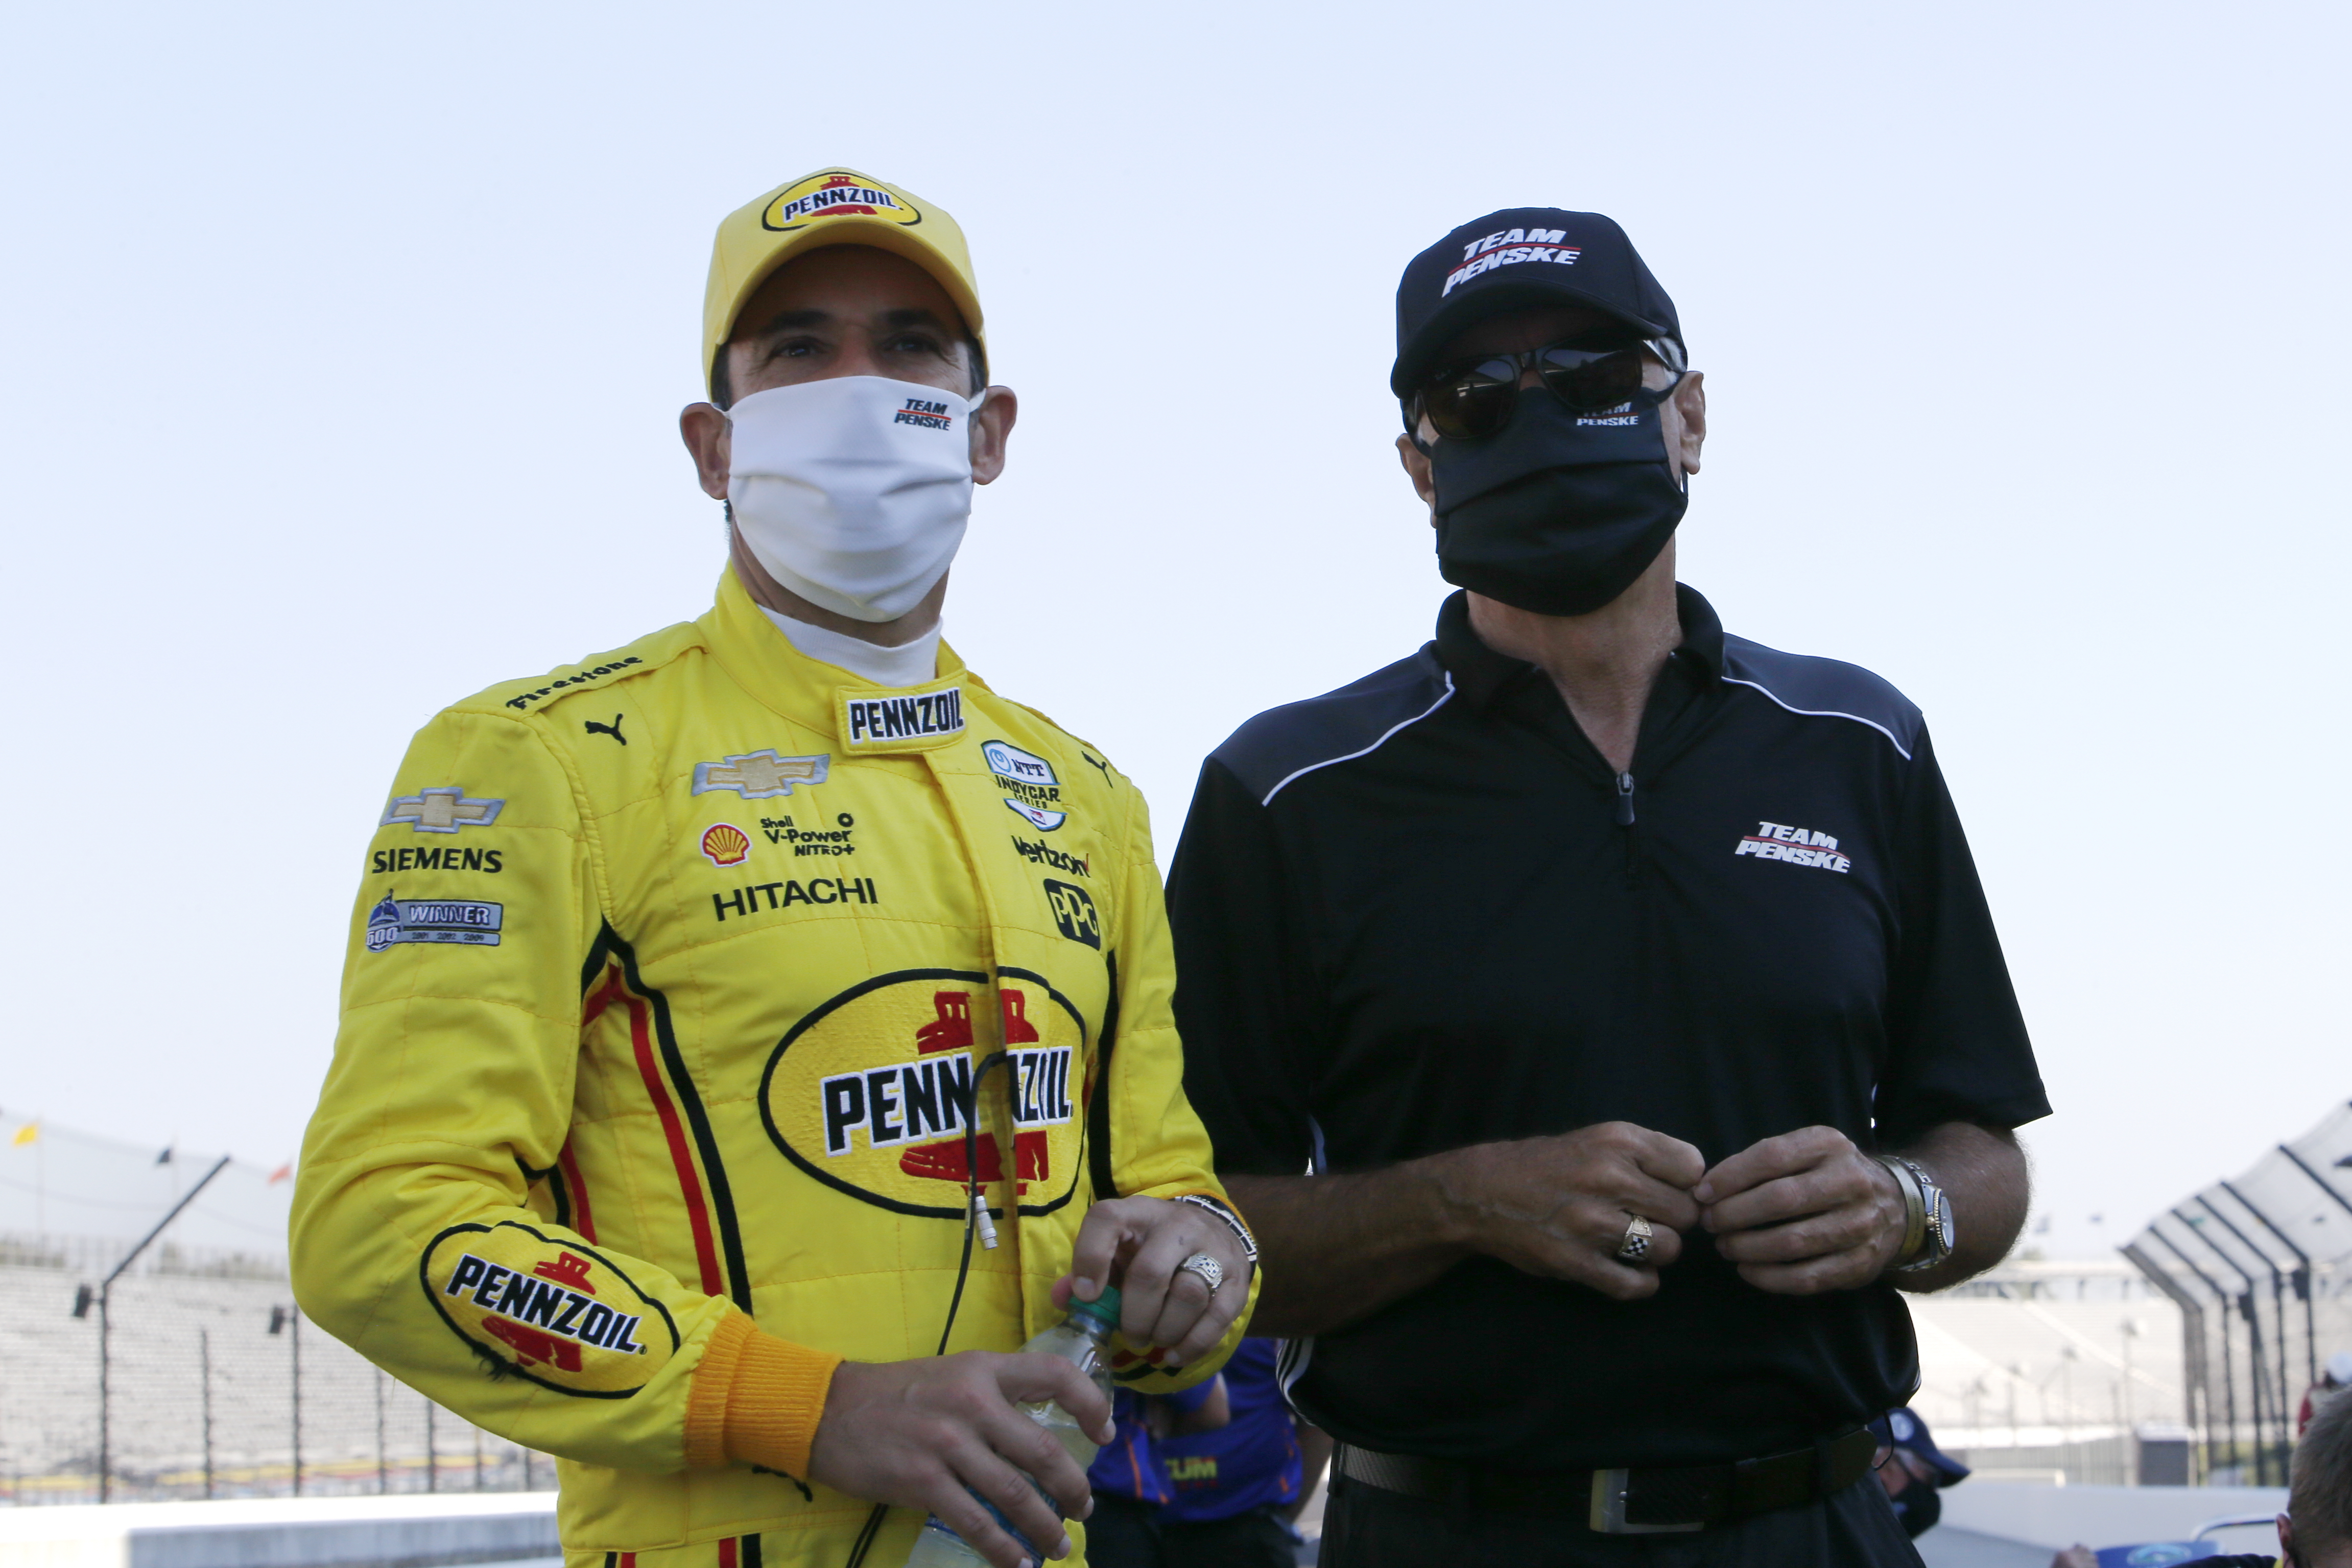 Helio Castroneves and Rick Mears